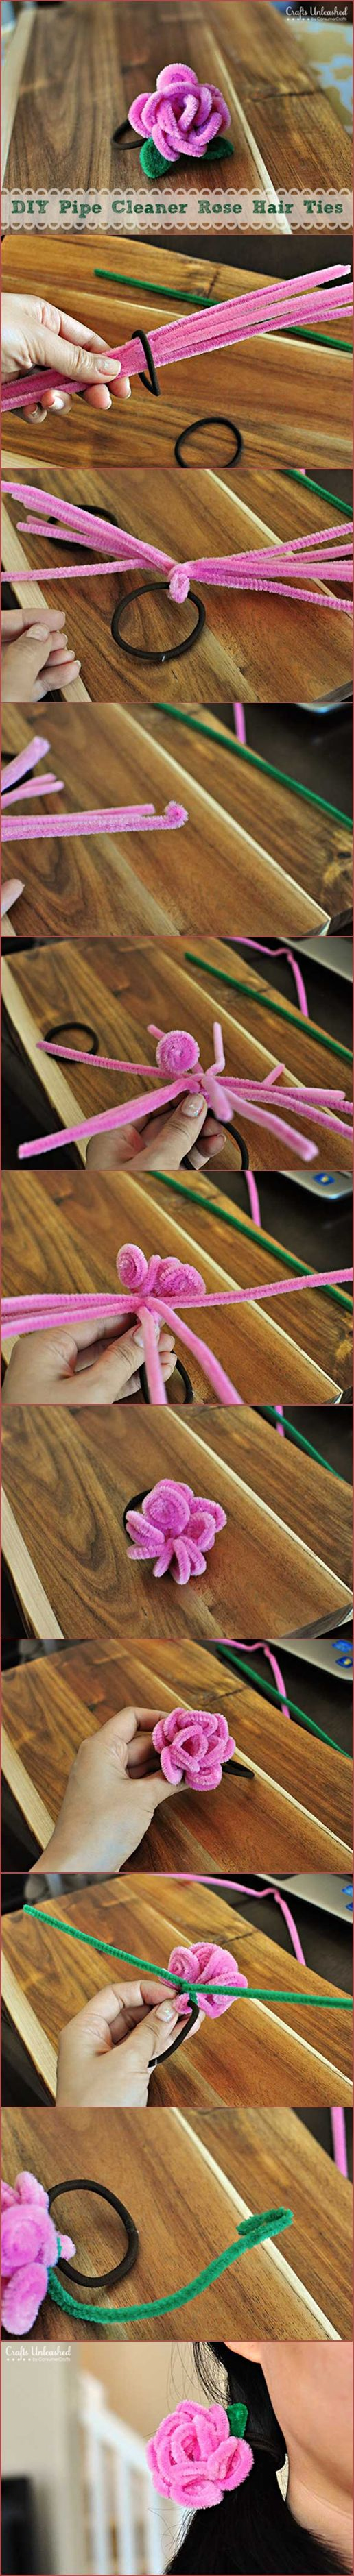 DIY Pipe Cleaner Rose Hair Ties. cute @Terri Osborne McElwee Osborne McElwee Osborne McElwee Corbett , nice for your young crafting friends !!